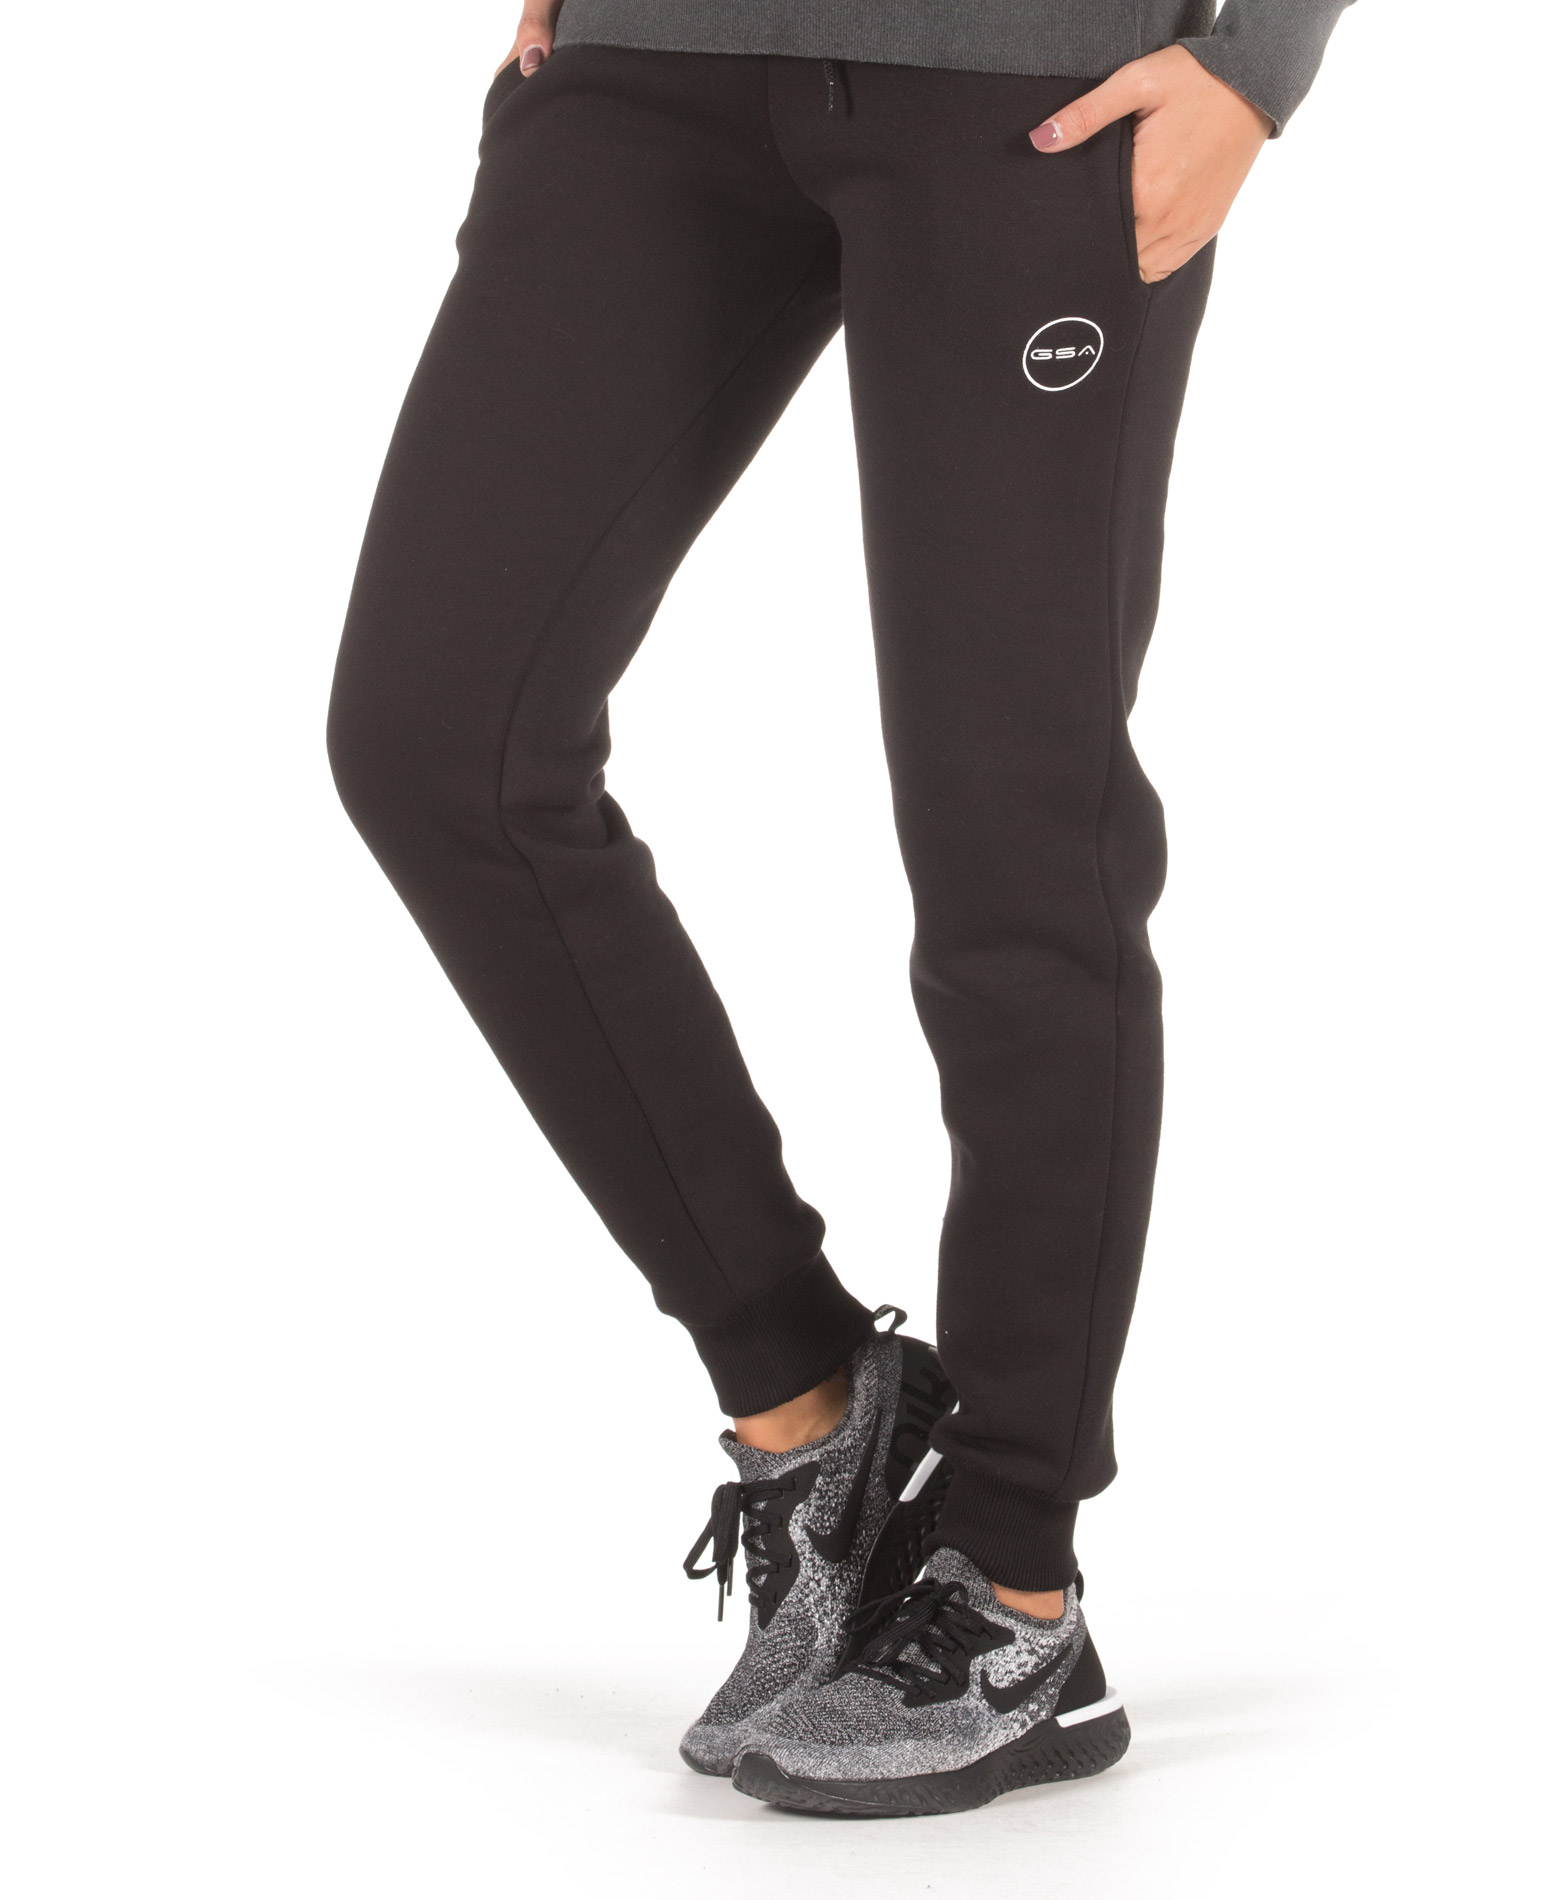 GSA SUPERCOTTON JOGGER SWEATPANTS 17-28033-01 JET BLACK Μαύρο